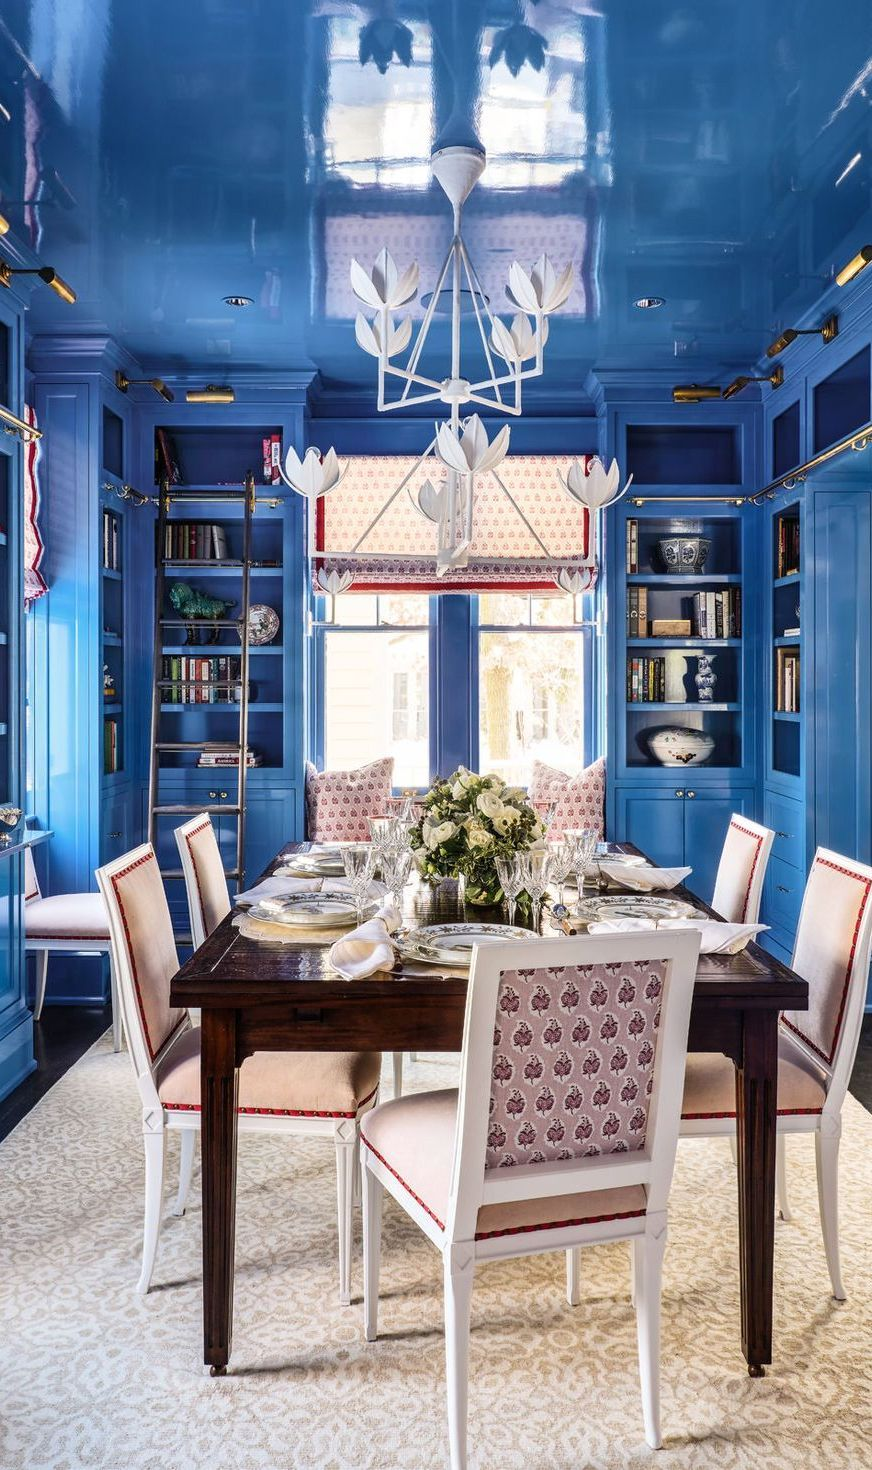 Stylish Living Room Ideas From Floral To Family Friendly In 2020 Dining Room Furniture Sets Stylish Living Room Blue Room Decor #stylish #living #room #design